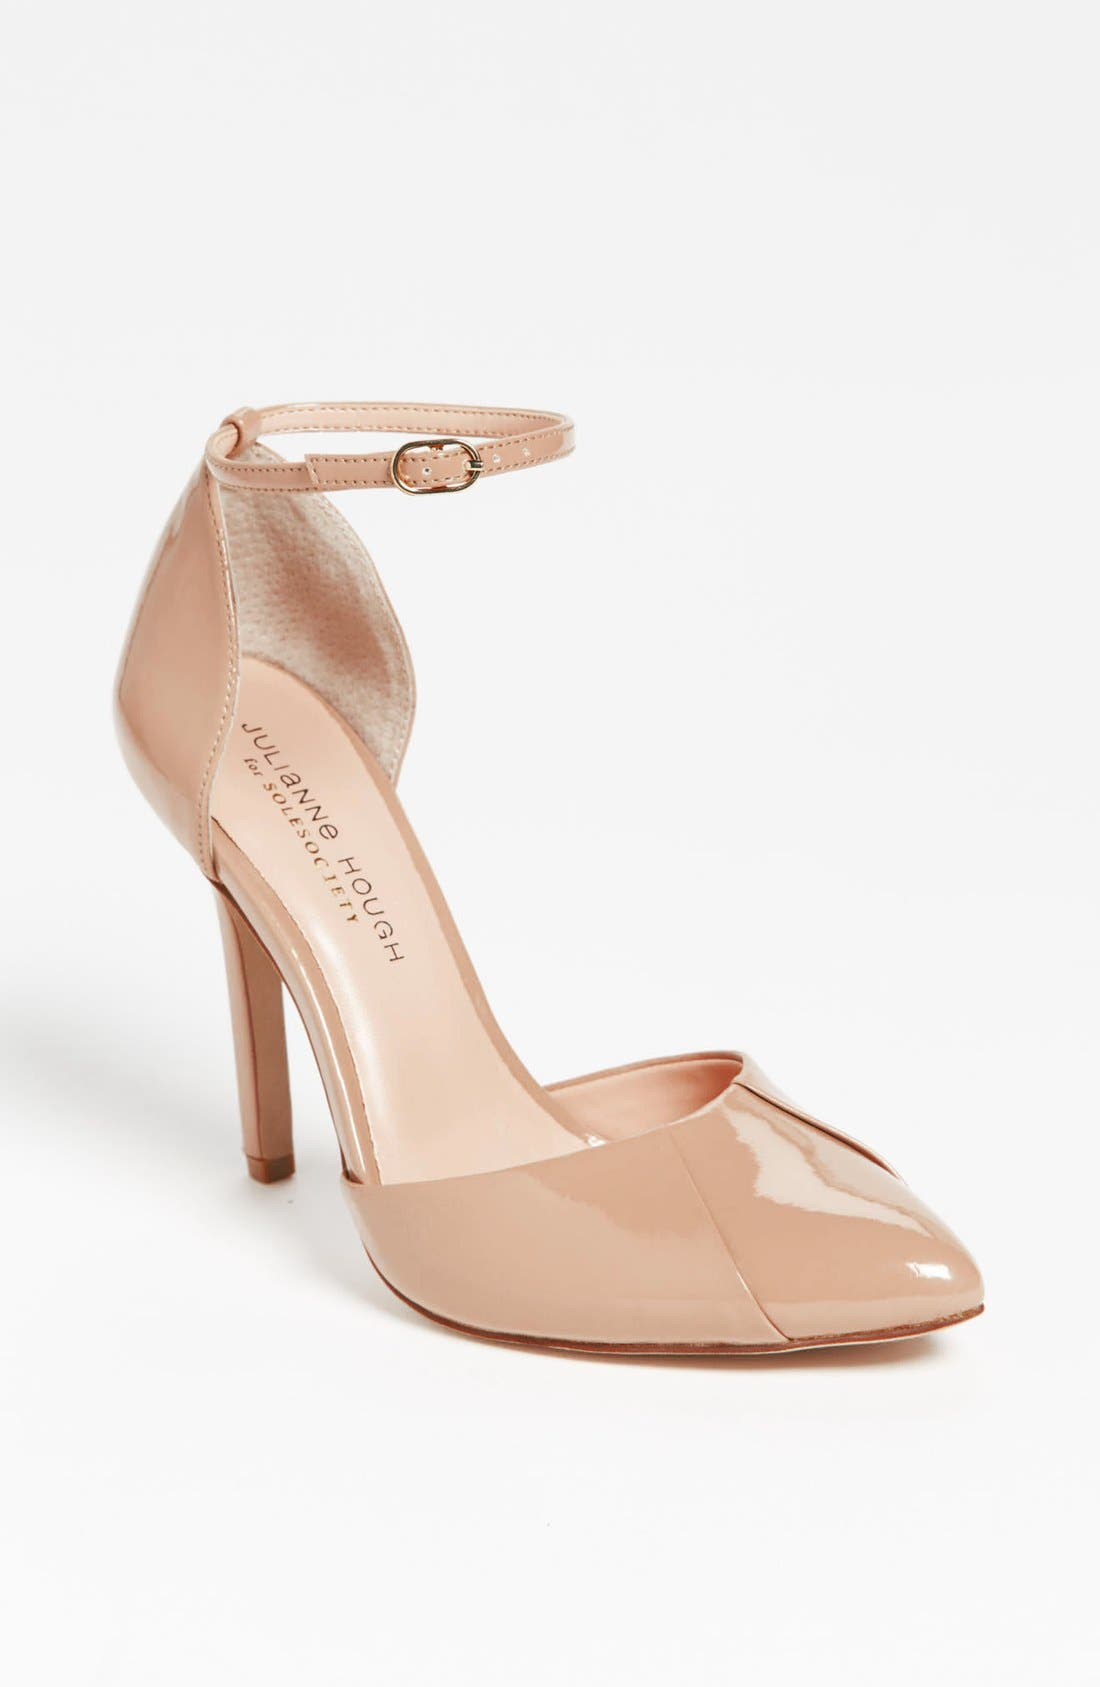 Alternate Image 1 Selected - Julianne Hough for Sole Society 'Giselle' Pump